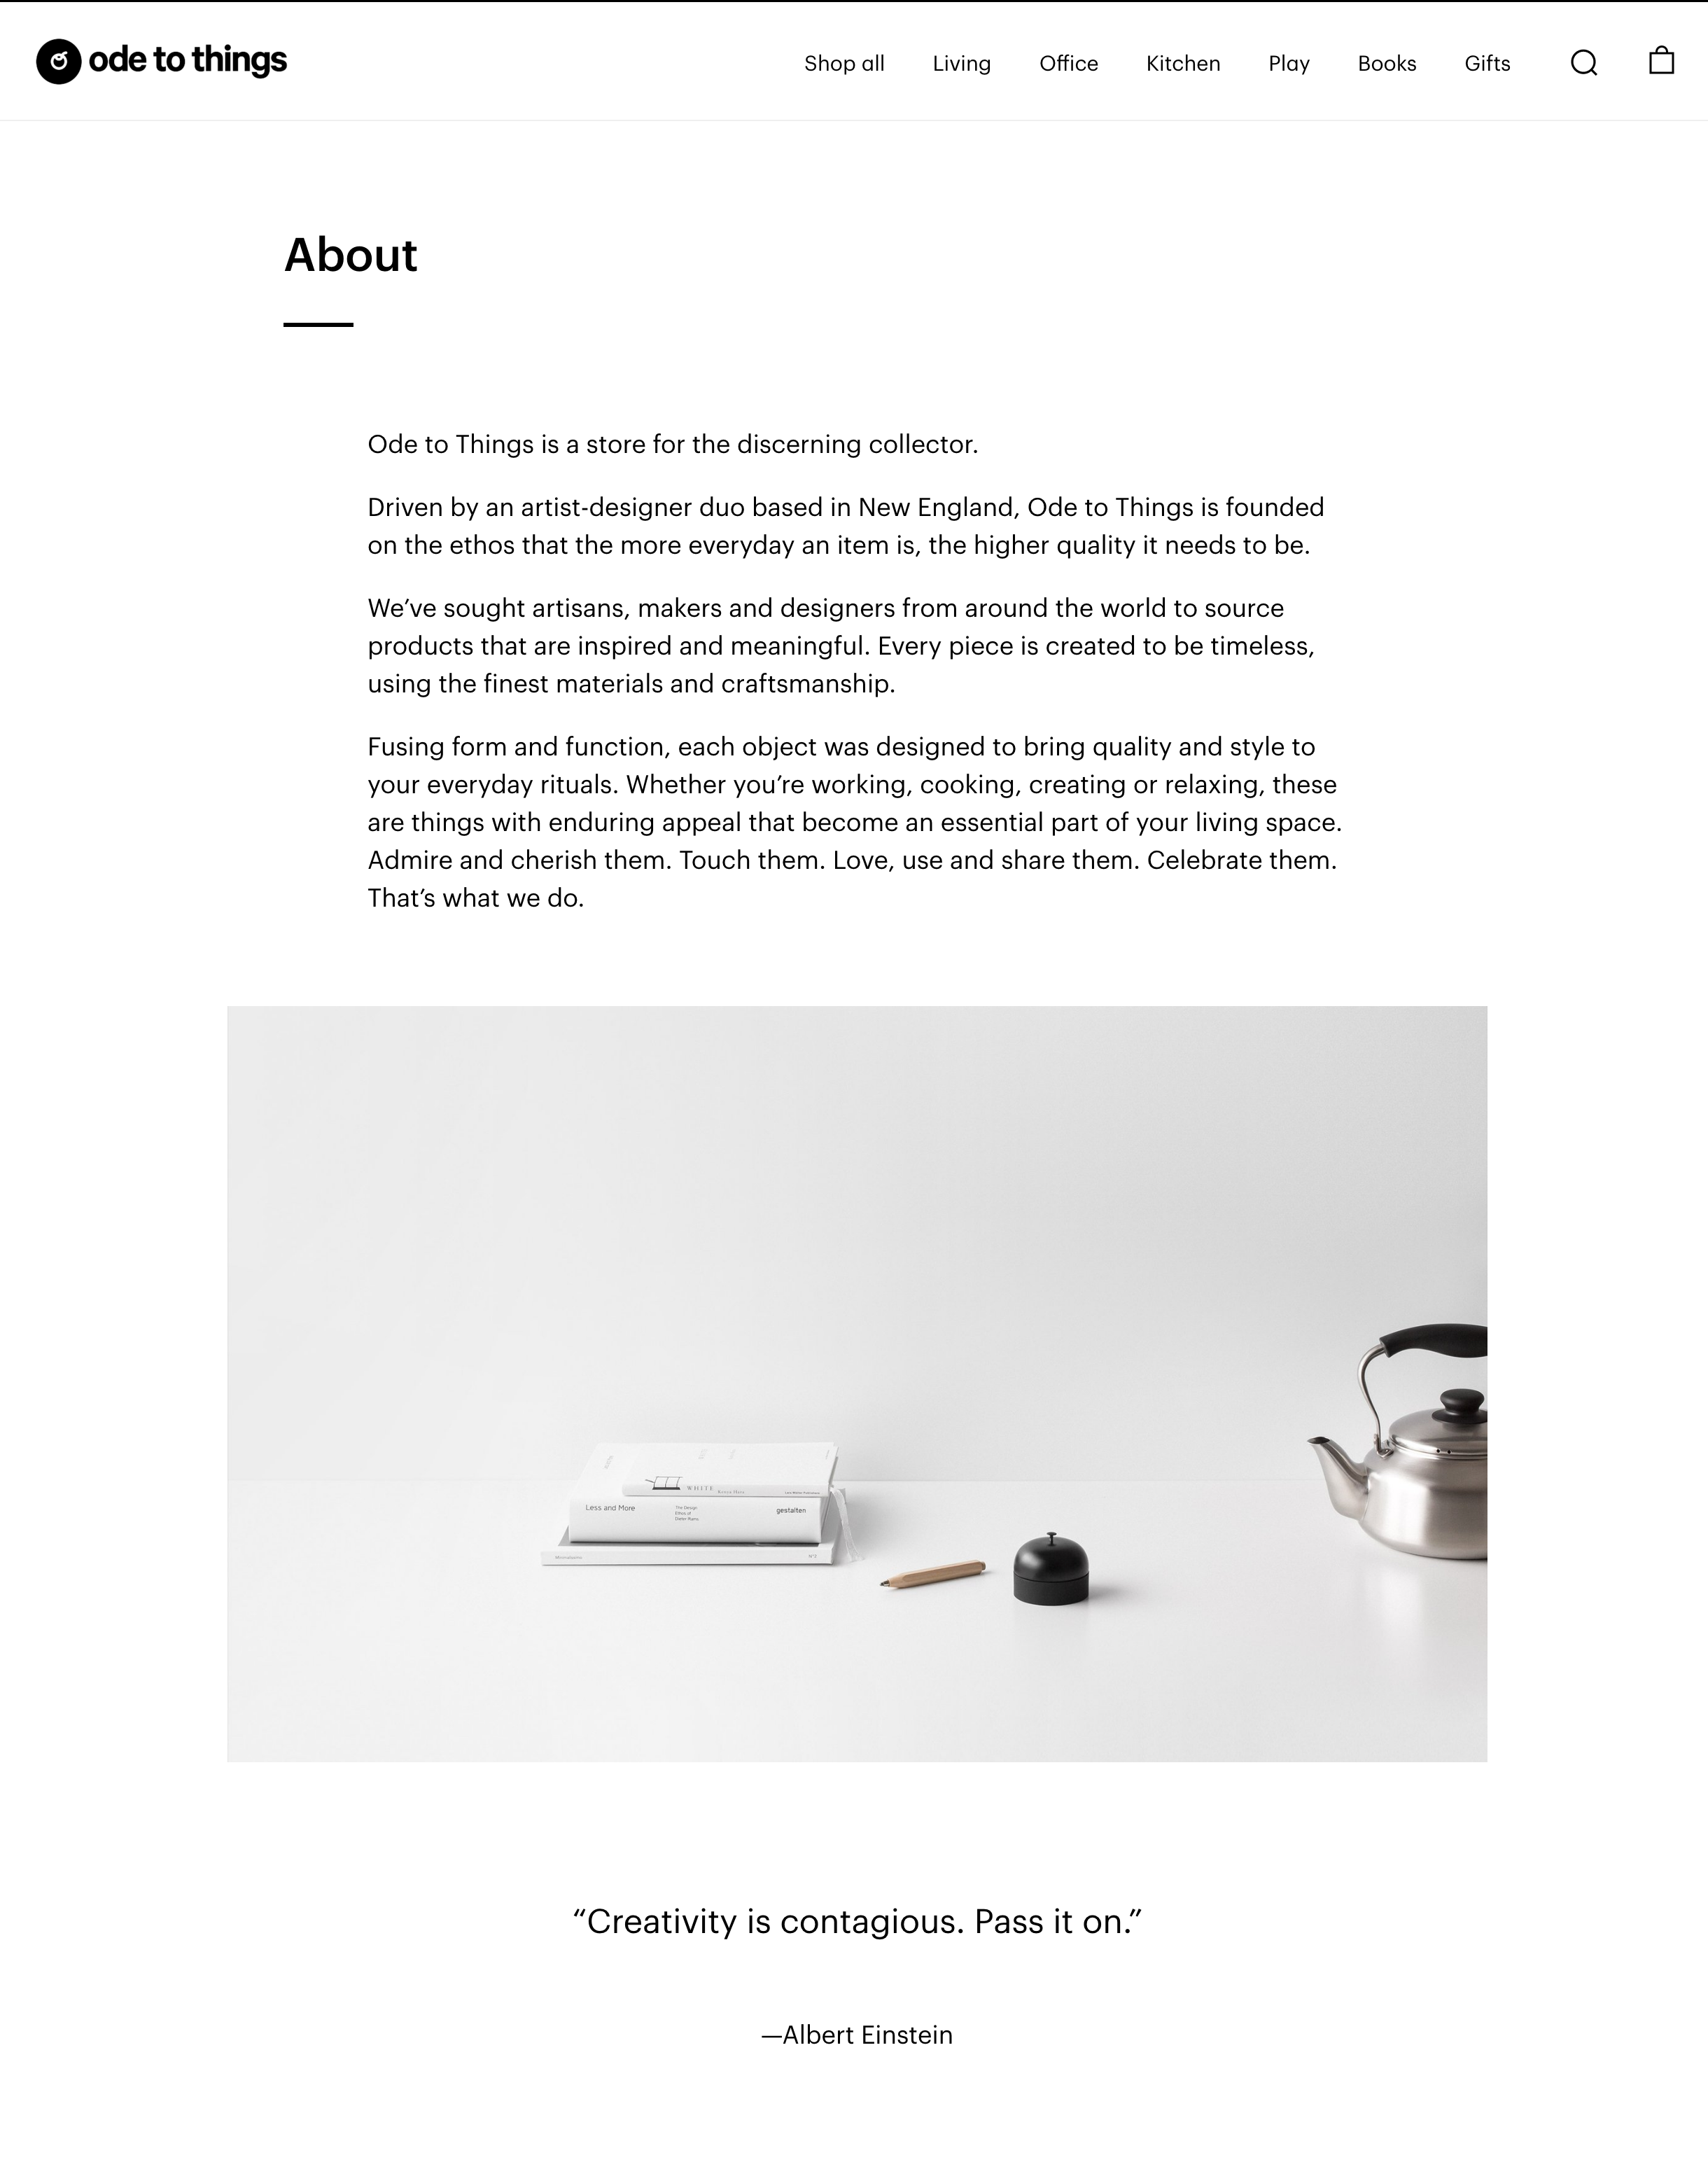 screencapture-odetothings-pages-about-2019-06-05-10_21_50.png